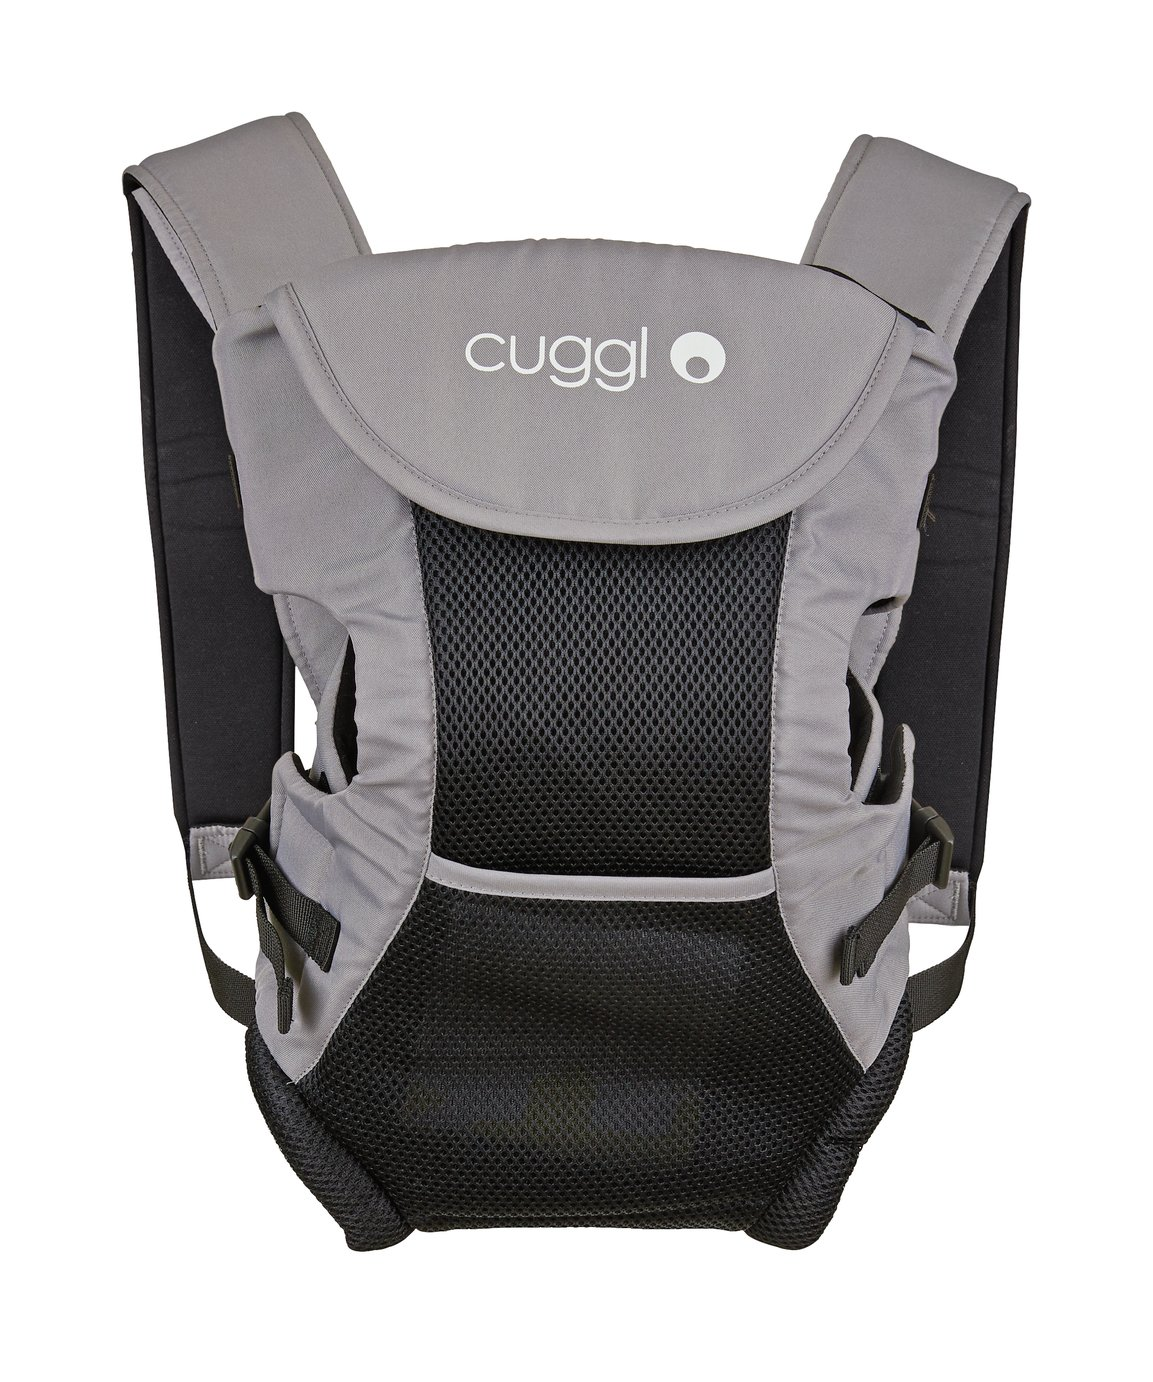 Cuggl Baby 3 in 1 Deluxe Carriers